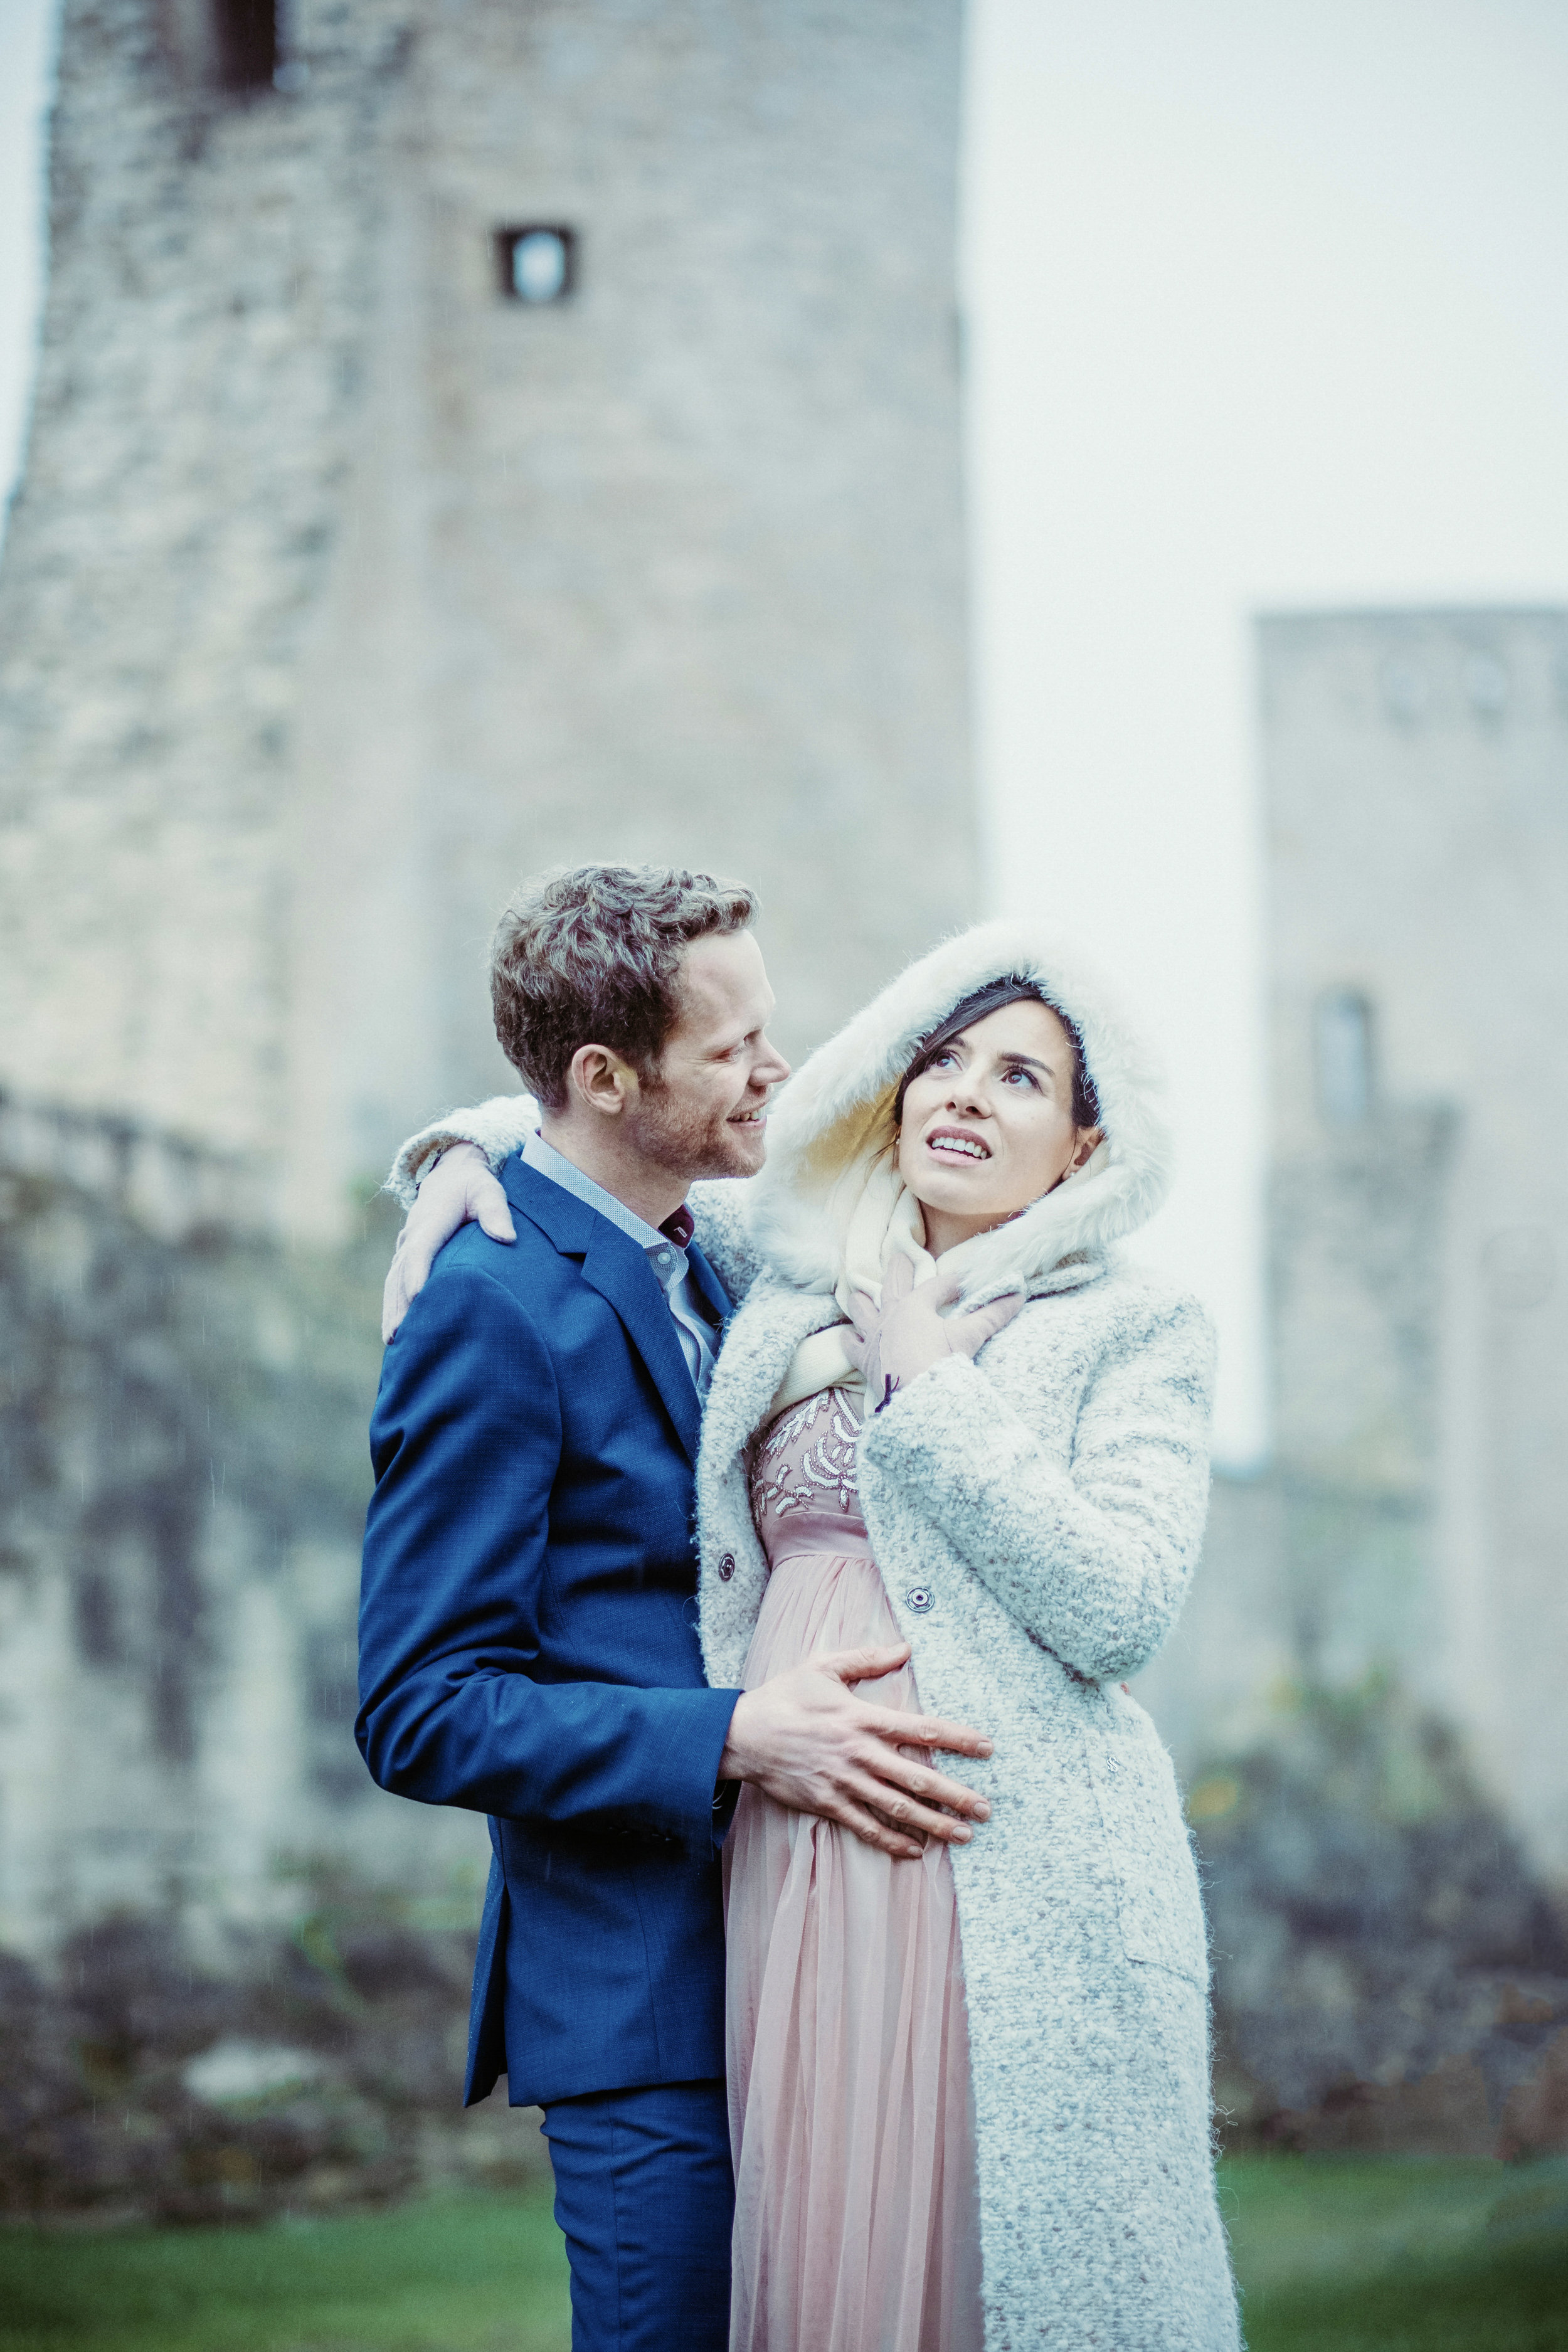 Mariage Lucie & Max (20 of 22).jpg